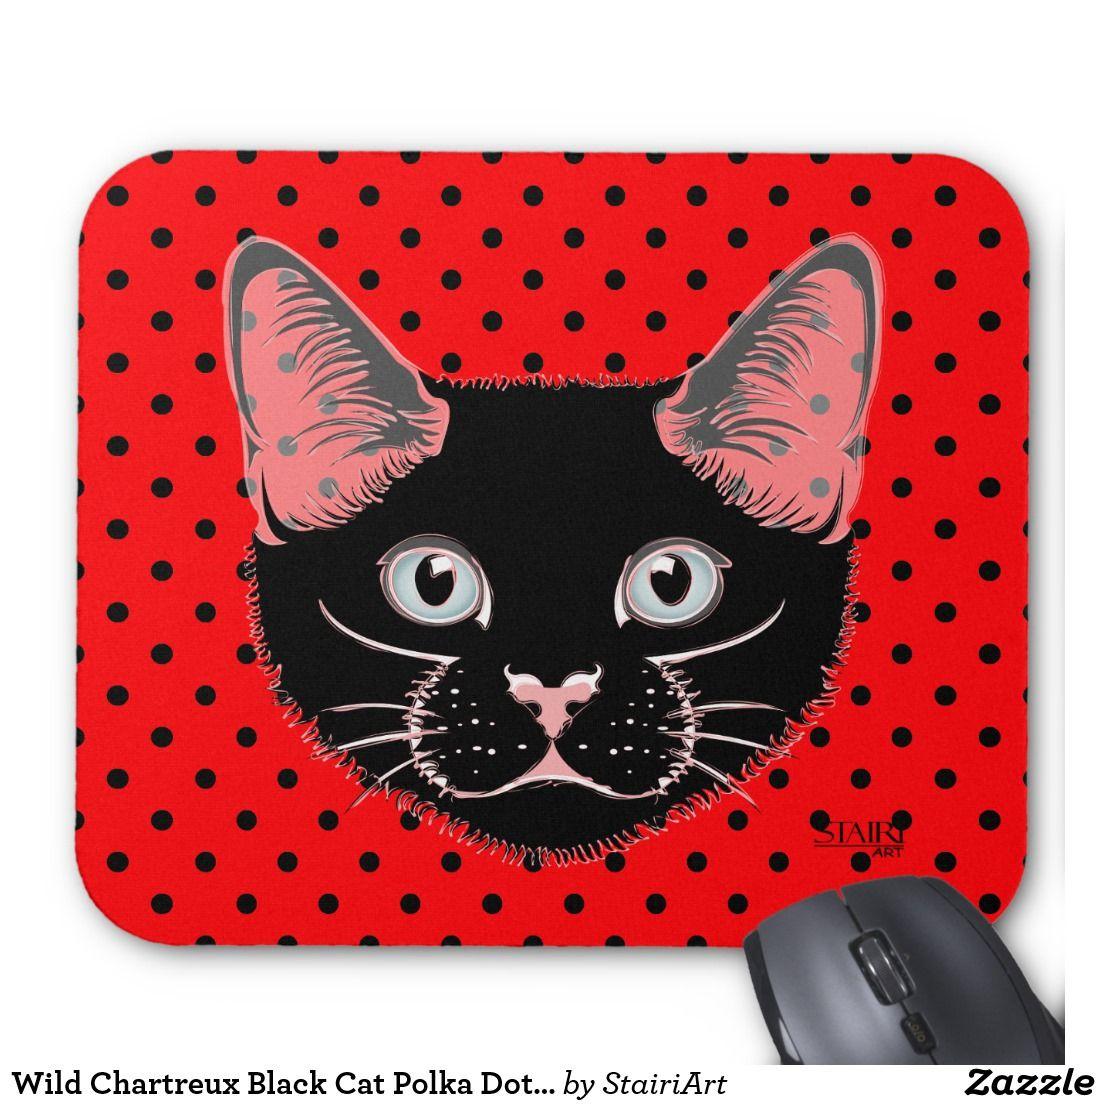 Wild Chartreux Black Cat Polka Dot Mouse Pad